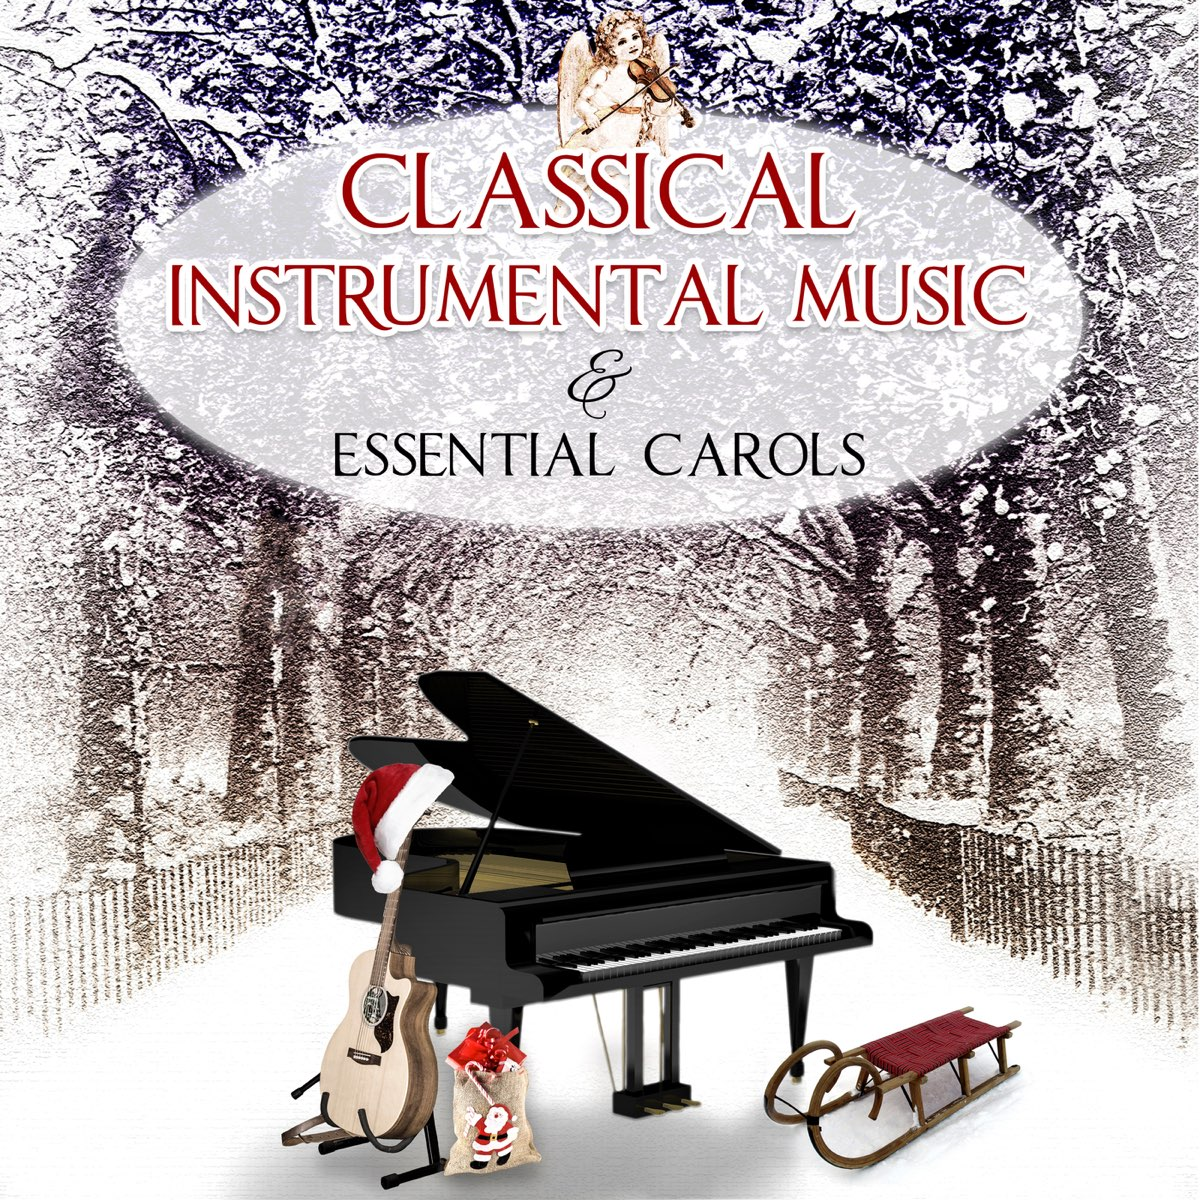 Traditional Christmas Carols Ensemble Classical Instrumental Music Essential Carols The Best Magic Songs For Family Christmas Eve And Other Stories By Traditional Christmas Carols Ensemble Album Artwork Cover My Tunes